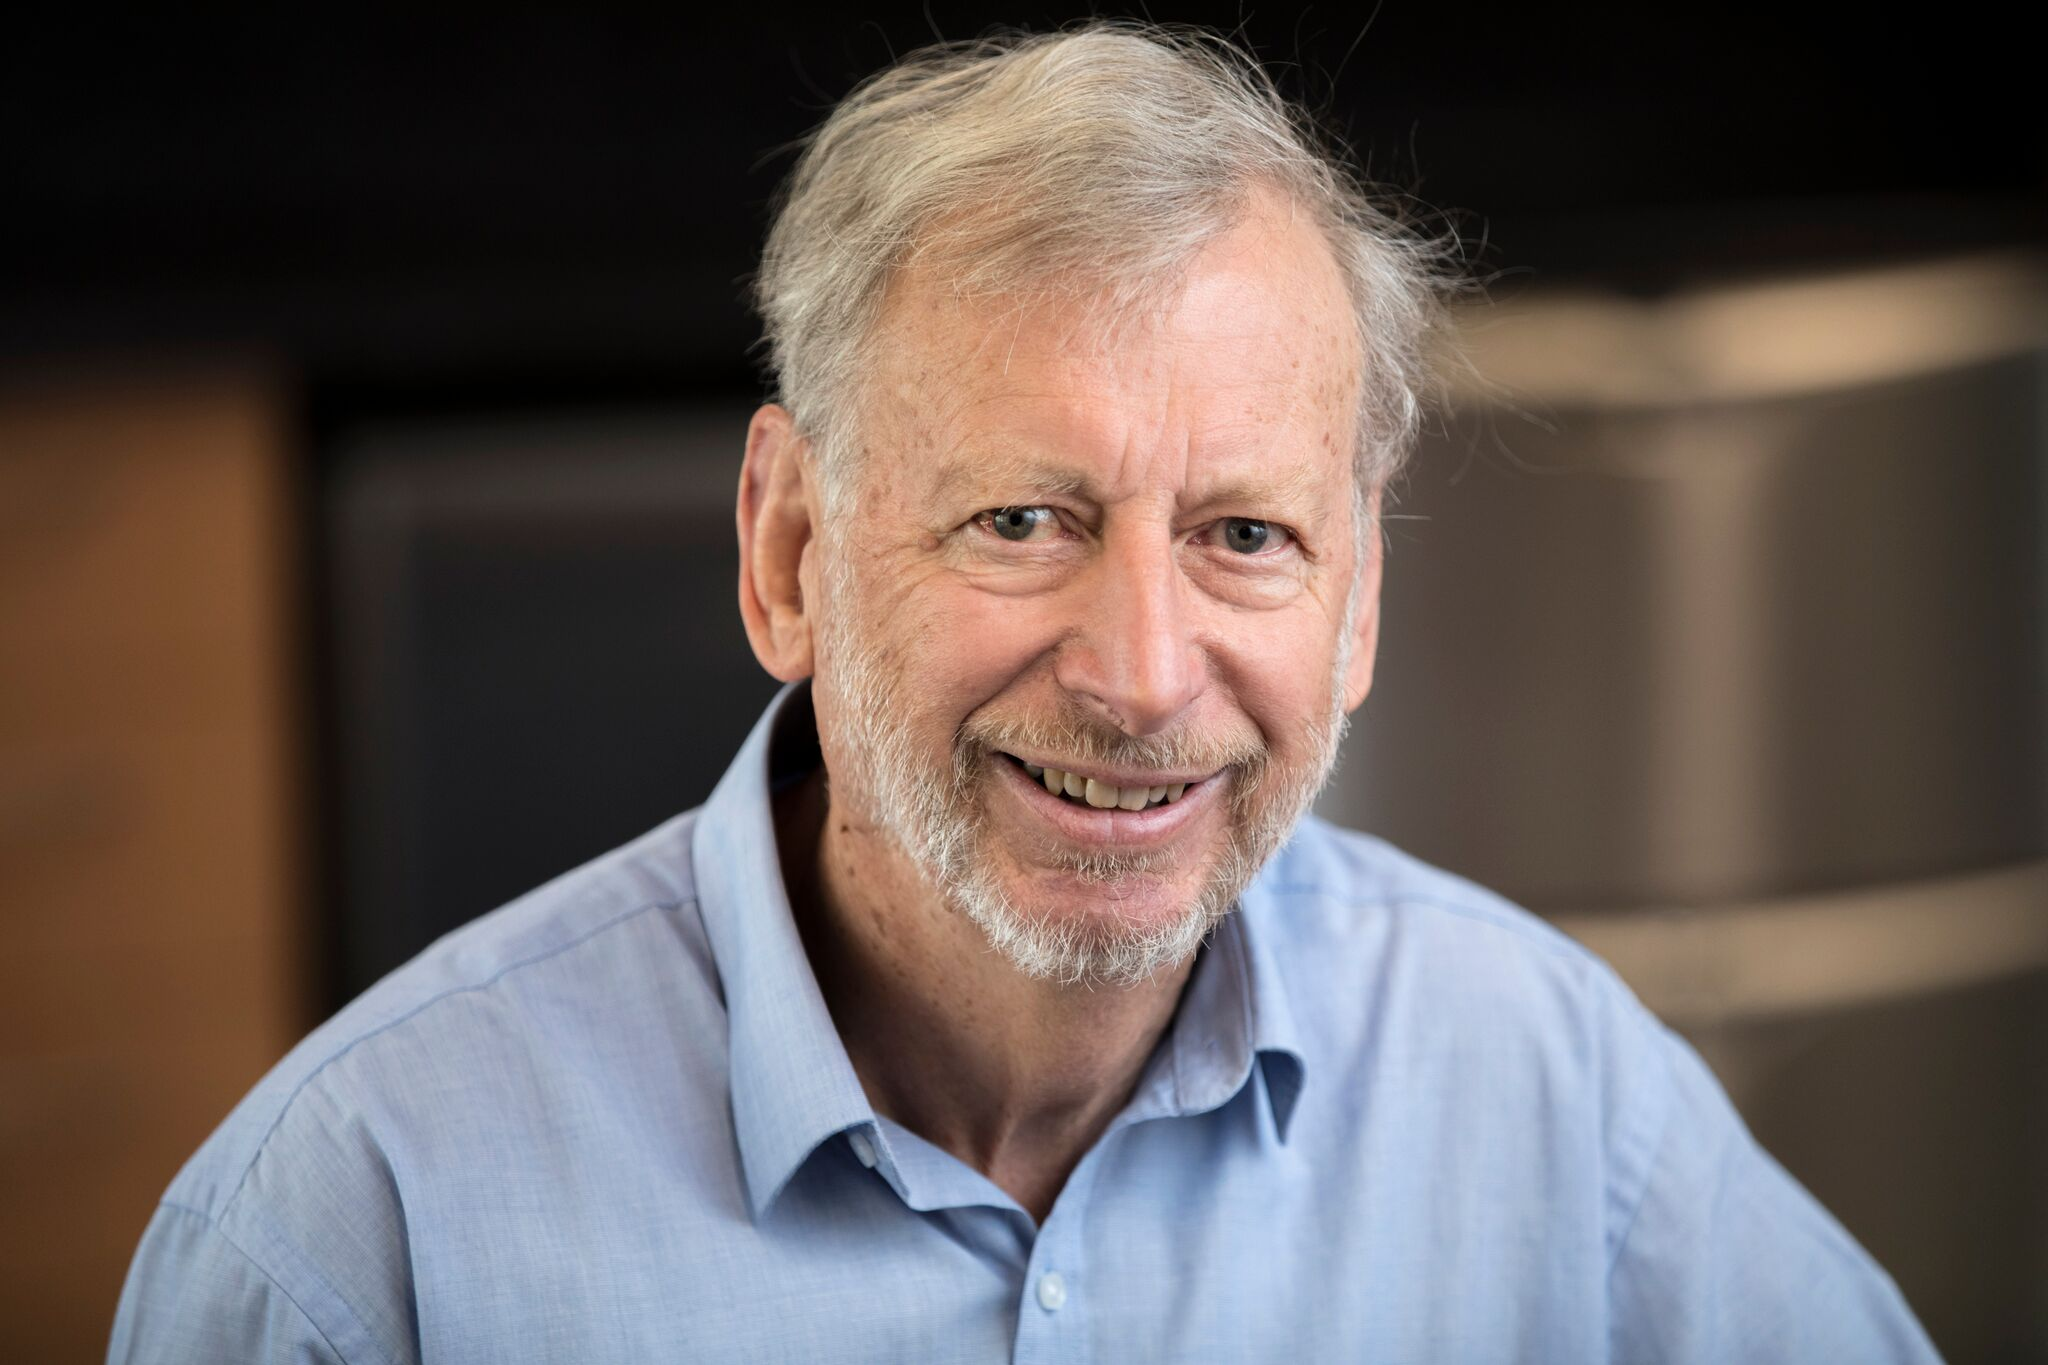 CSIRO  Honorary  Fellow  Dr  Richard  (Dick)  Manchester,  recipient  of  the  Australian  Academy  of  Science's  2019  Matthew  Flinders  Medal.  Credit:  CSIRO.